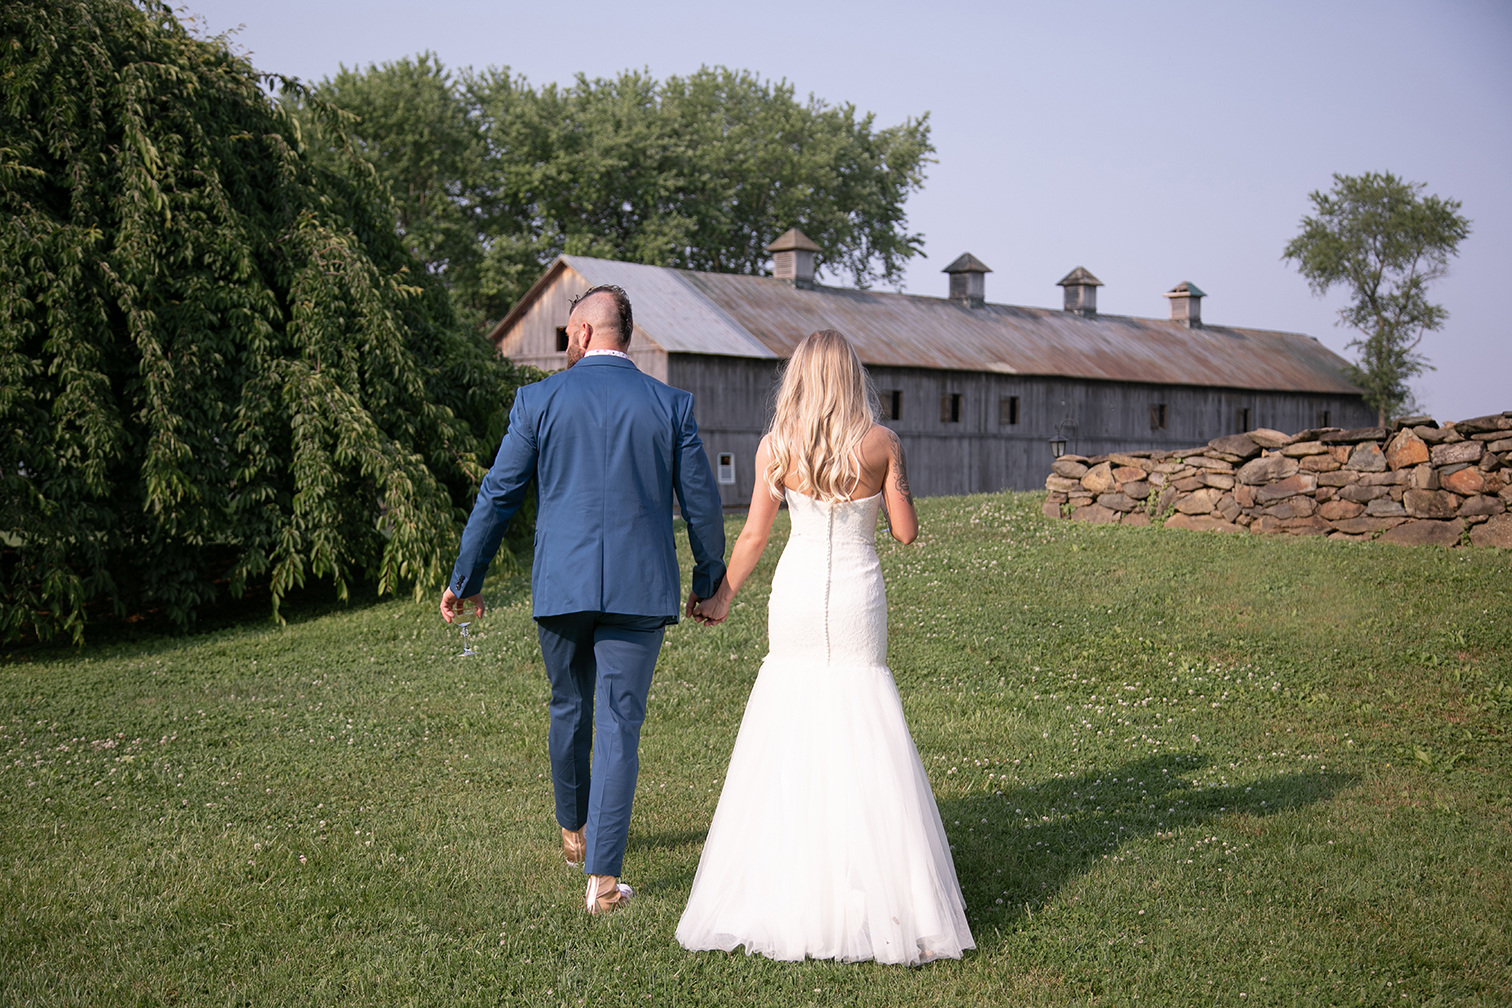 couple walking with barn in background